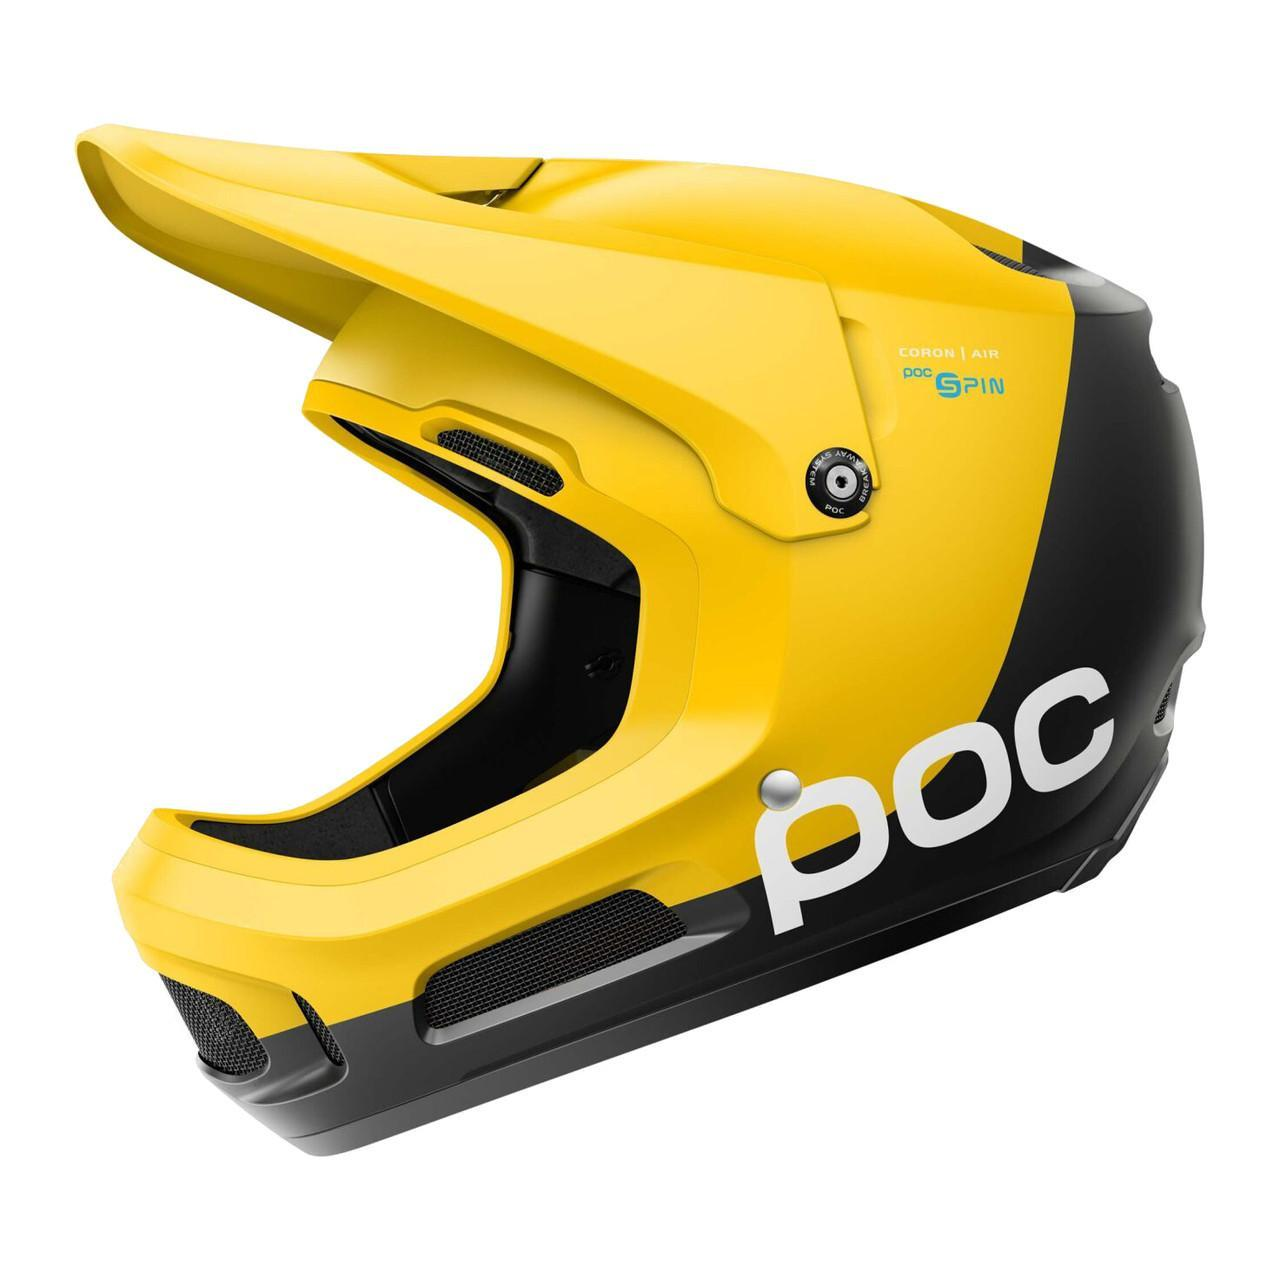 Шолом велосипедний POC Coron Air Spin XL/XXL 59-62 Sulphite Yellow (PC 106631311XLX1)